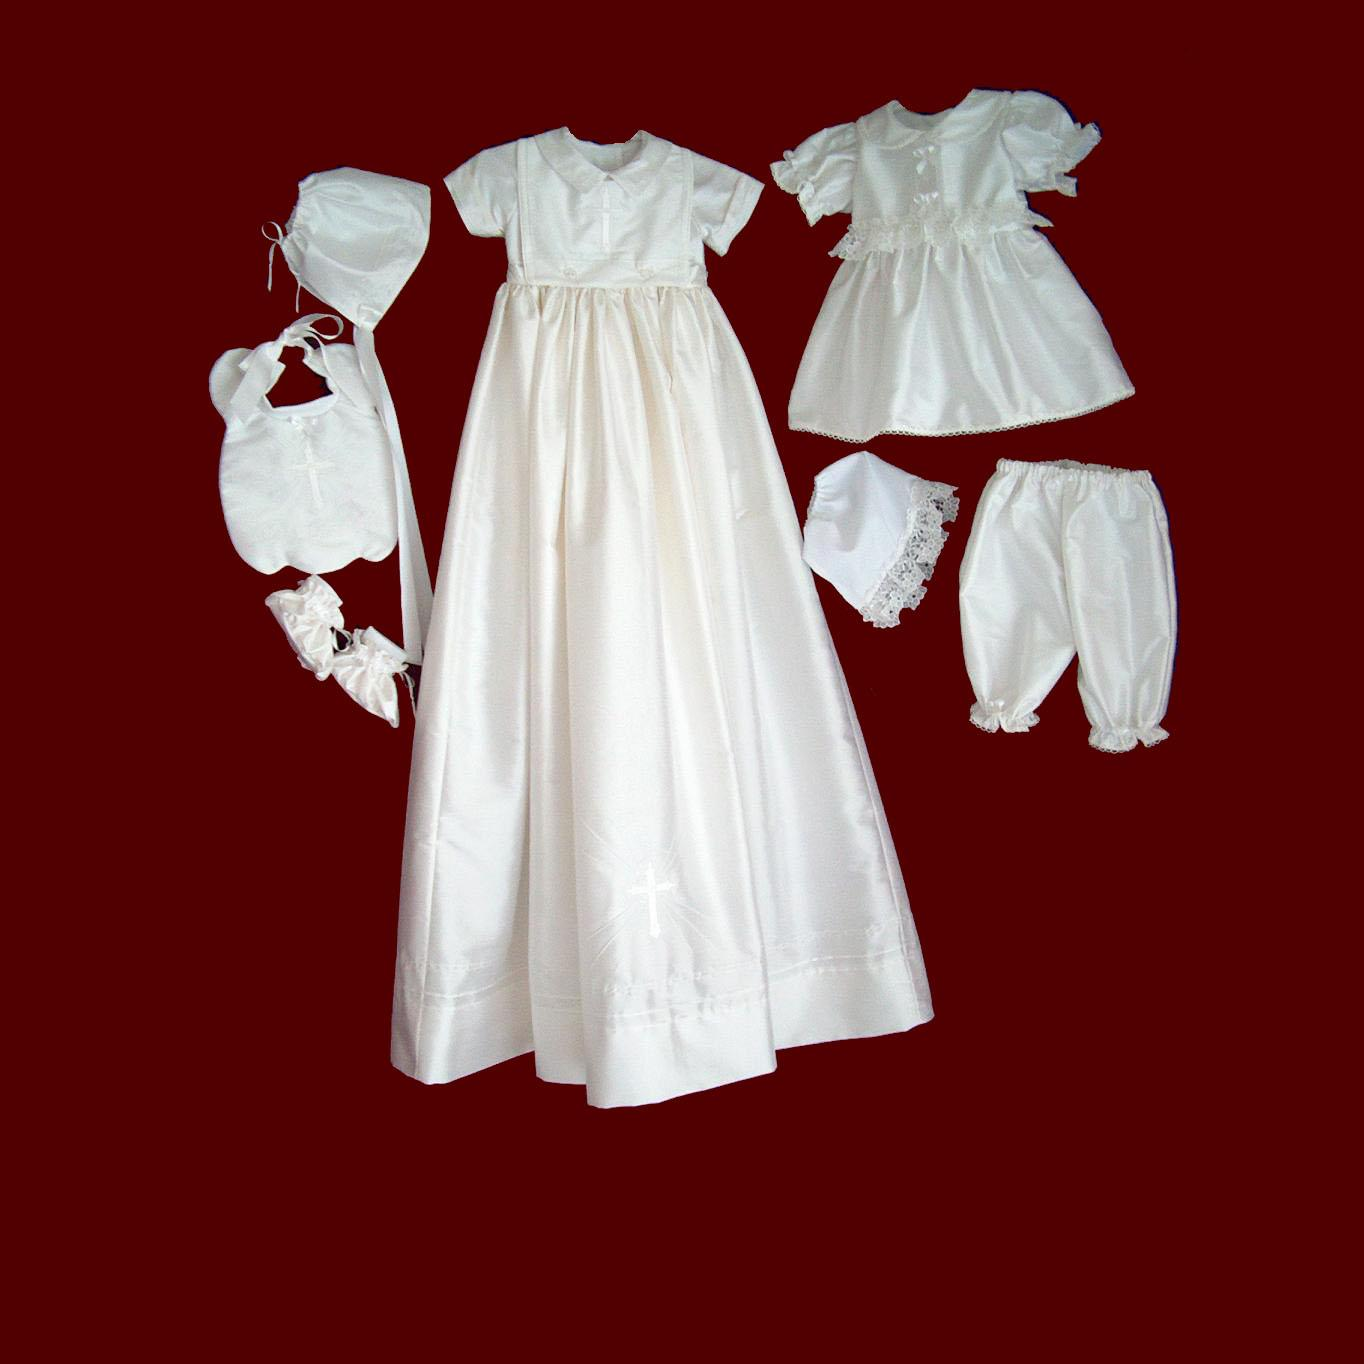 Ivory Boy & Girl Christening Ensemble with Detachable Gown & Accessories